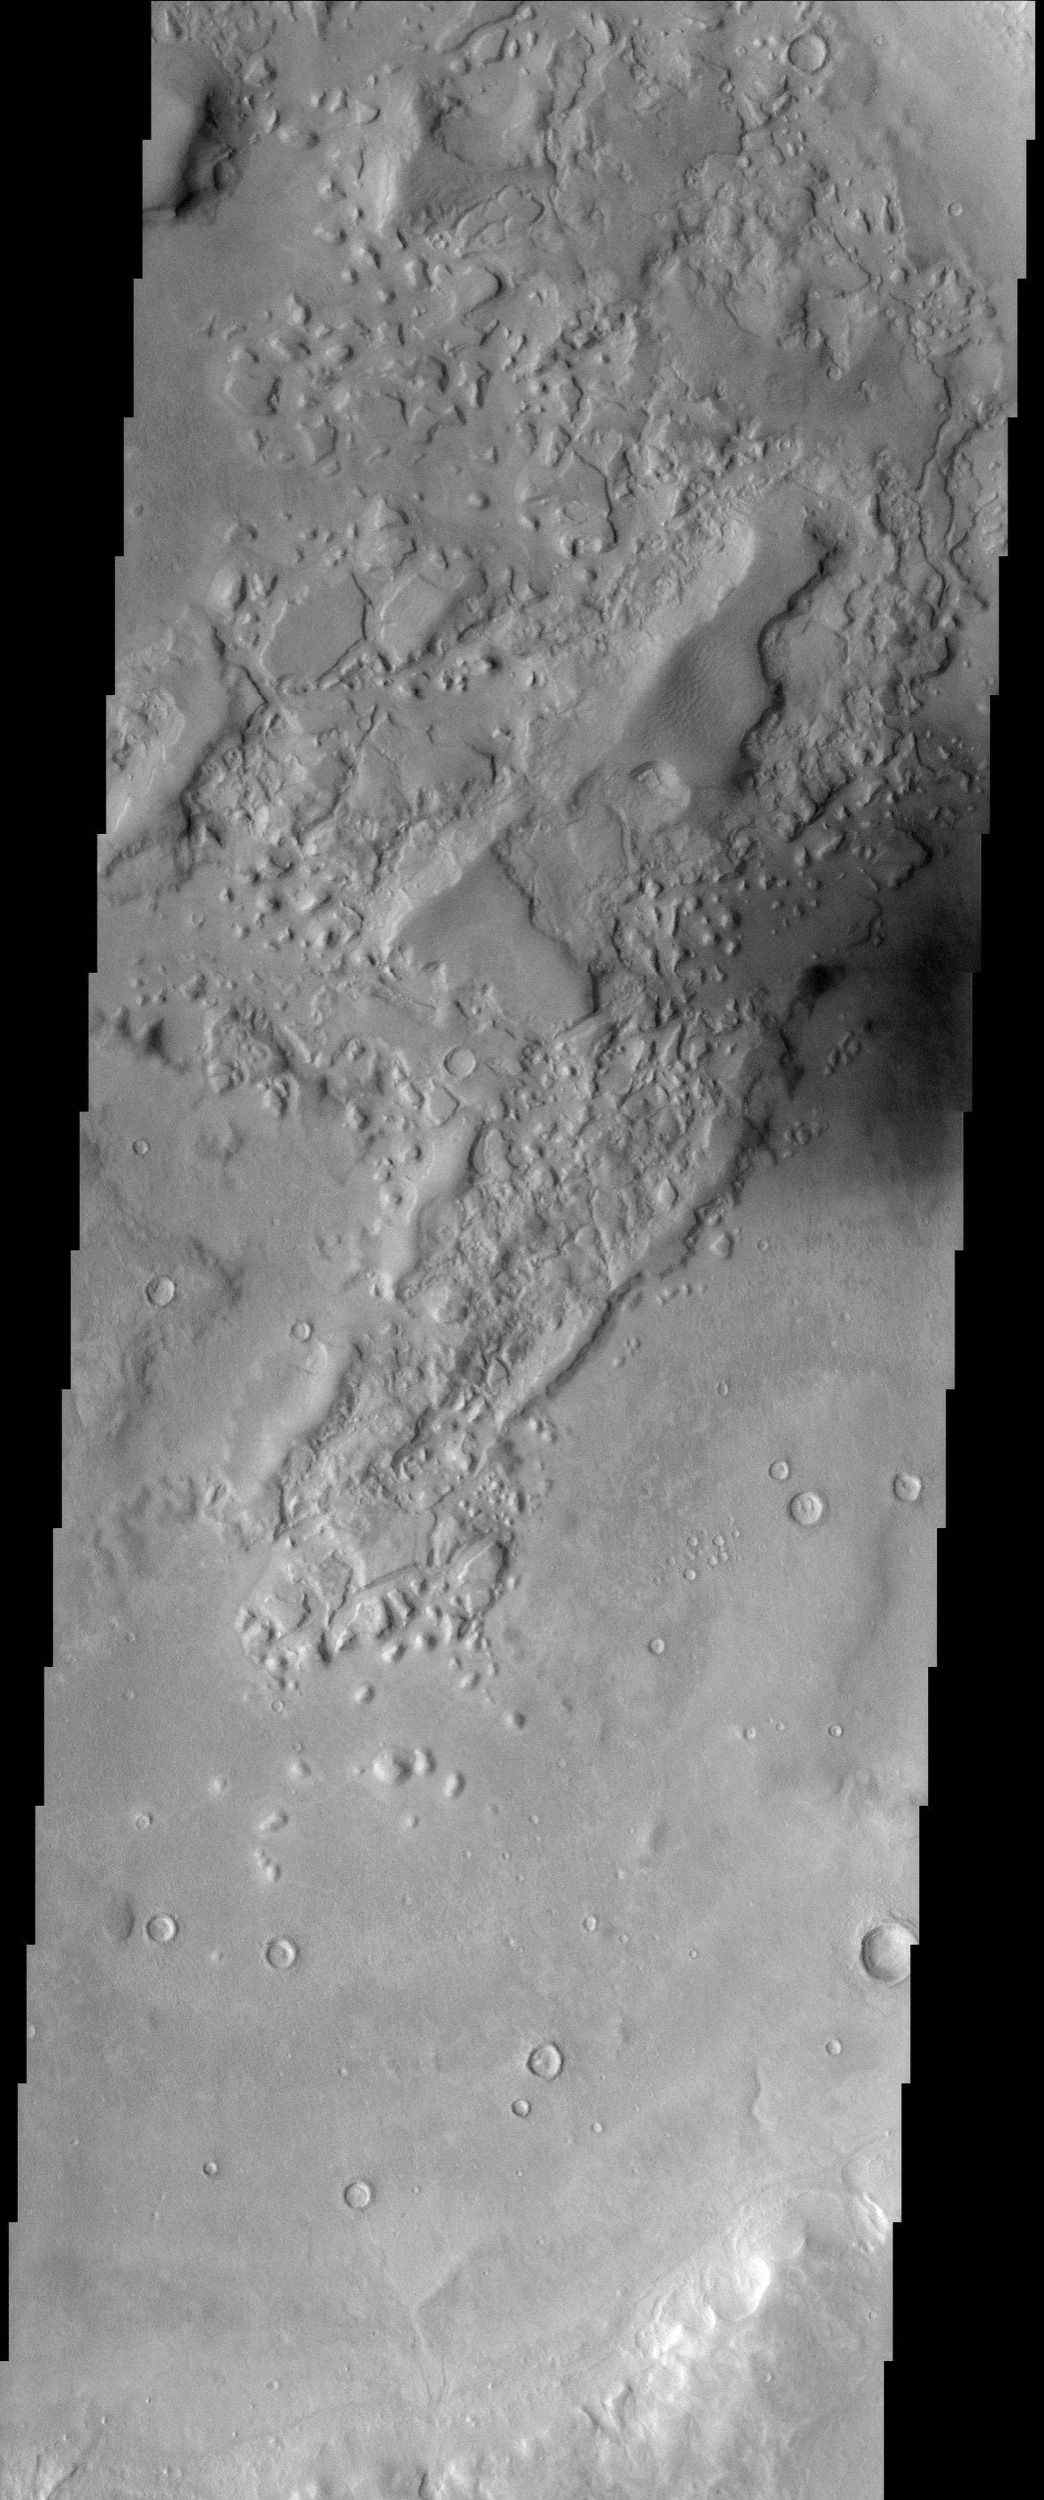 This image from NASA's Mars Odyssey spacecraft shows a location within Semeykin Crater, which is in the Martian northern hemisphere.